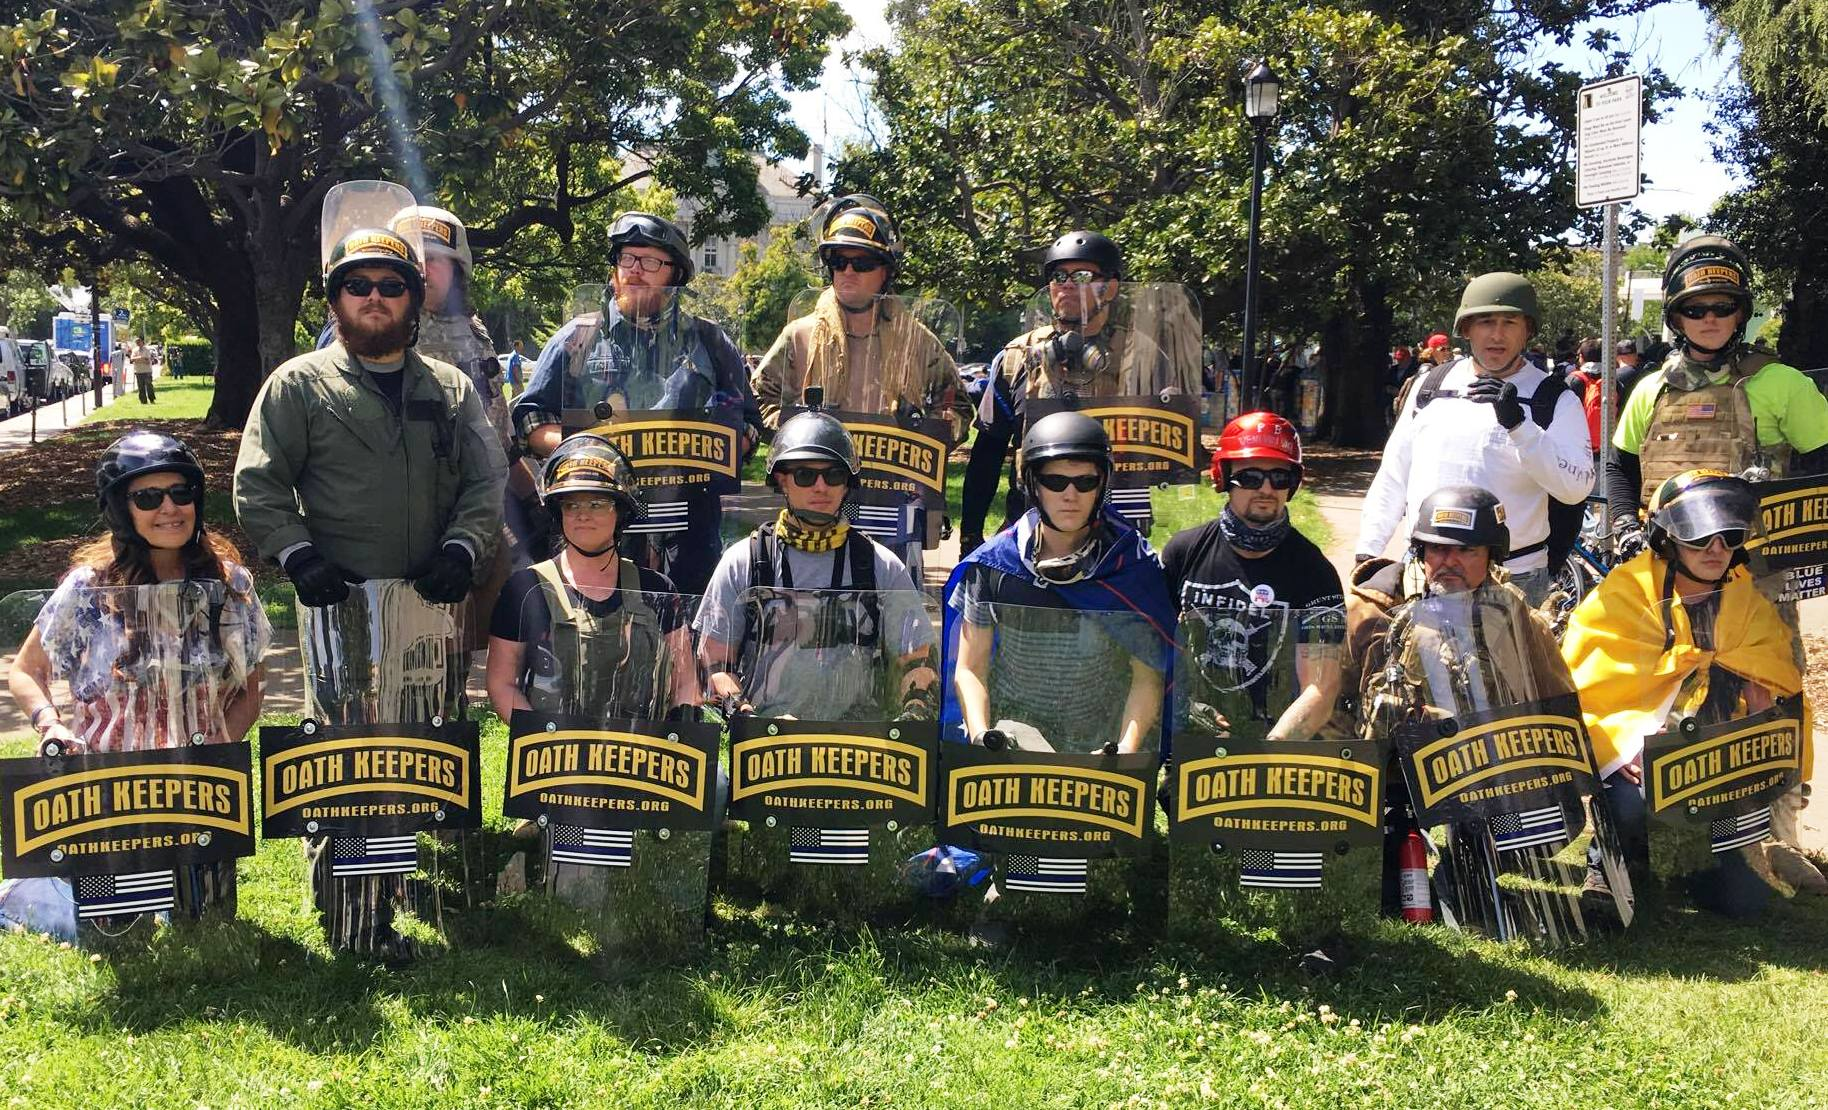 Antonio Foreman and the Oath Keepers